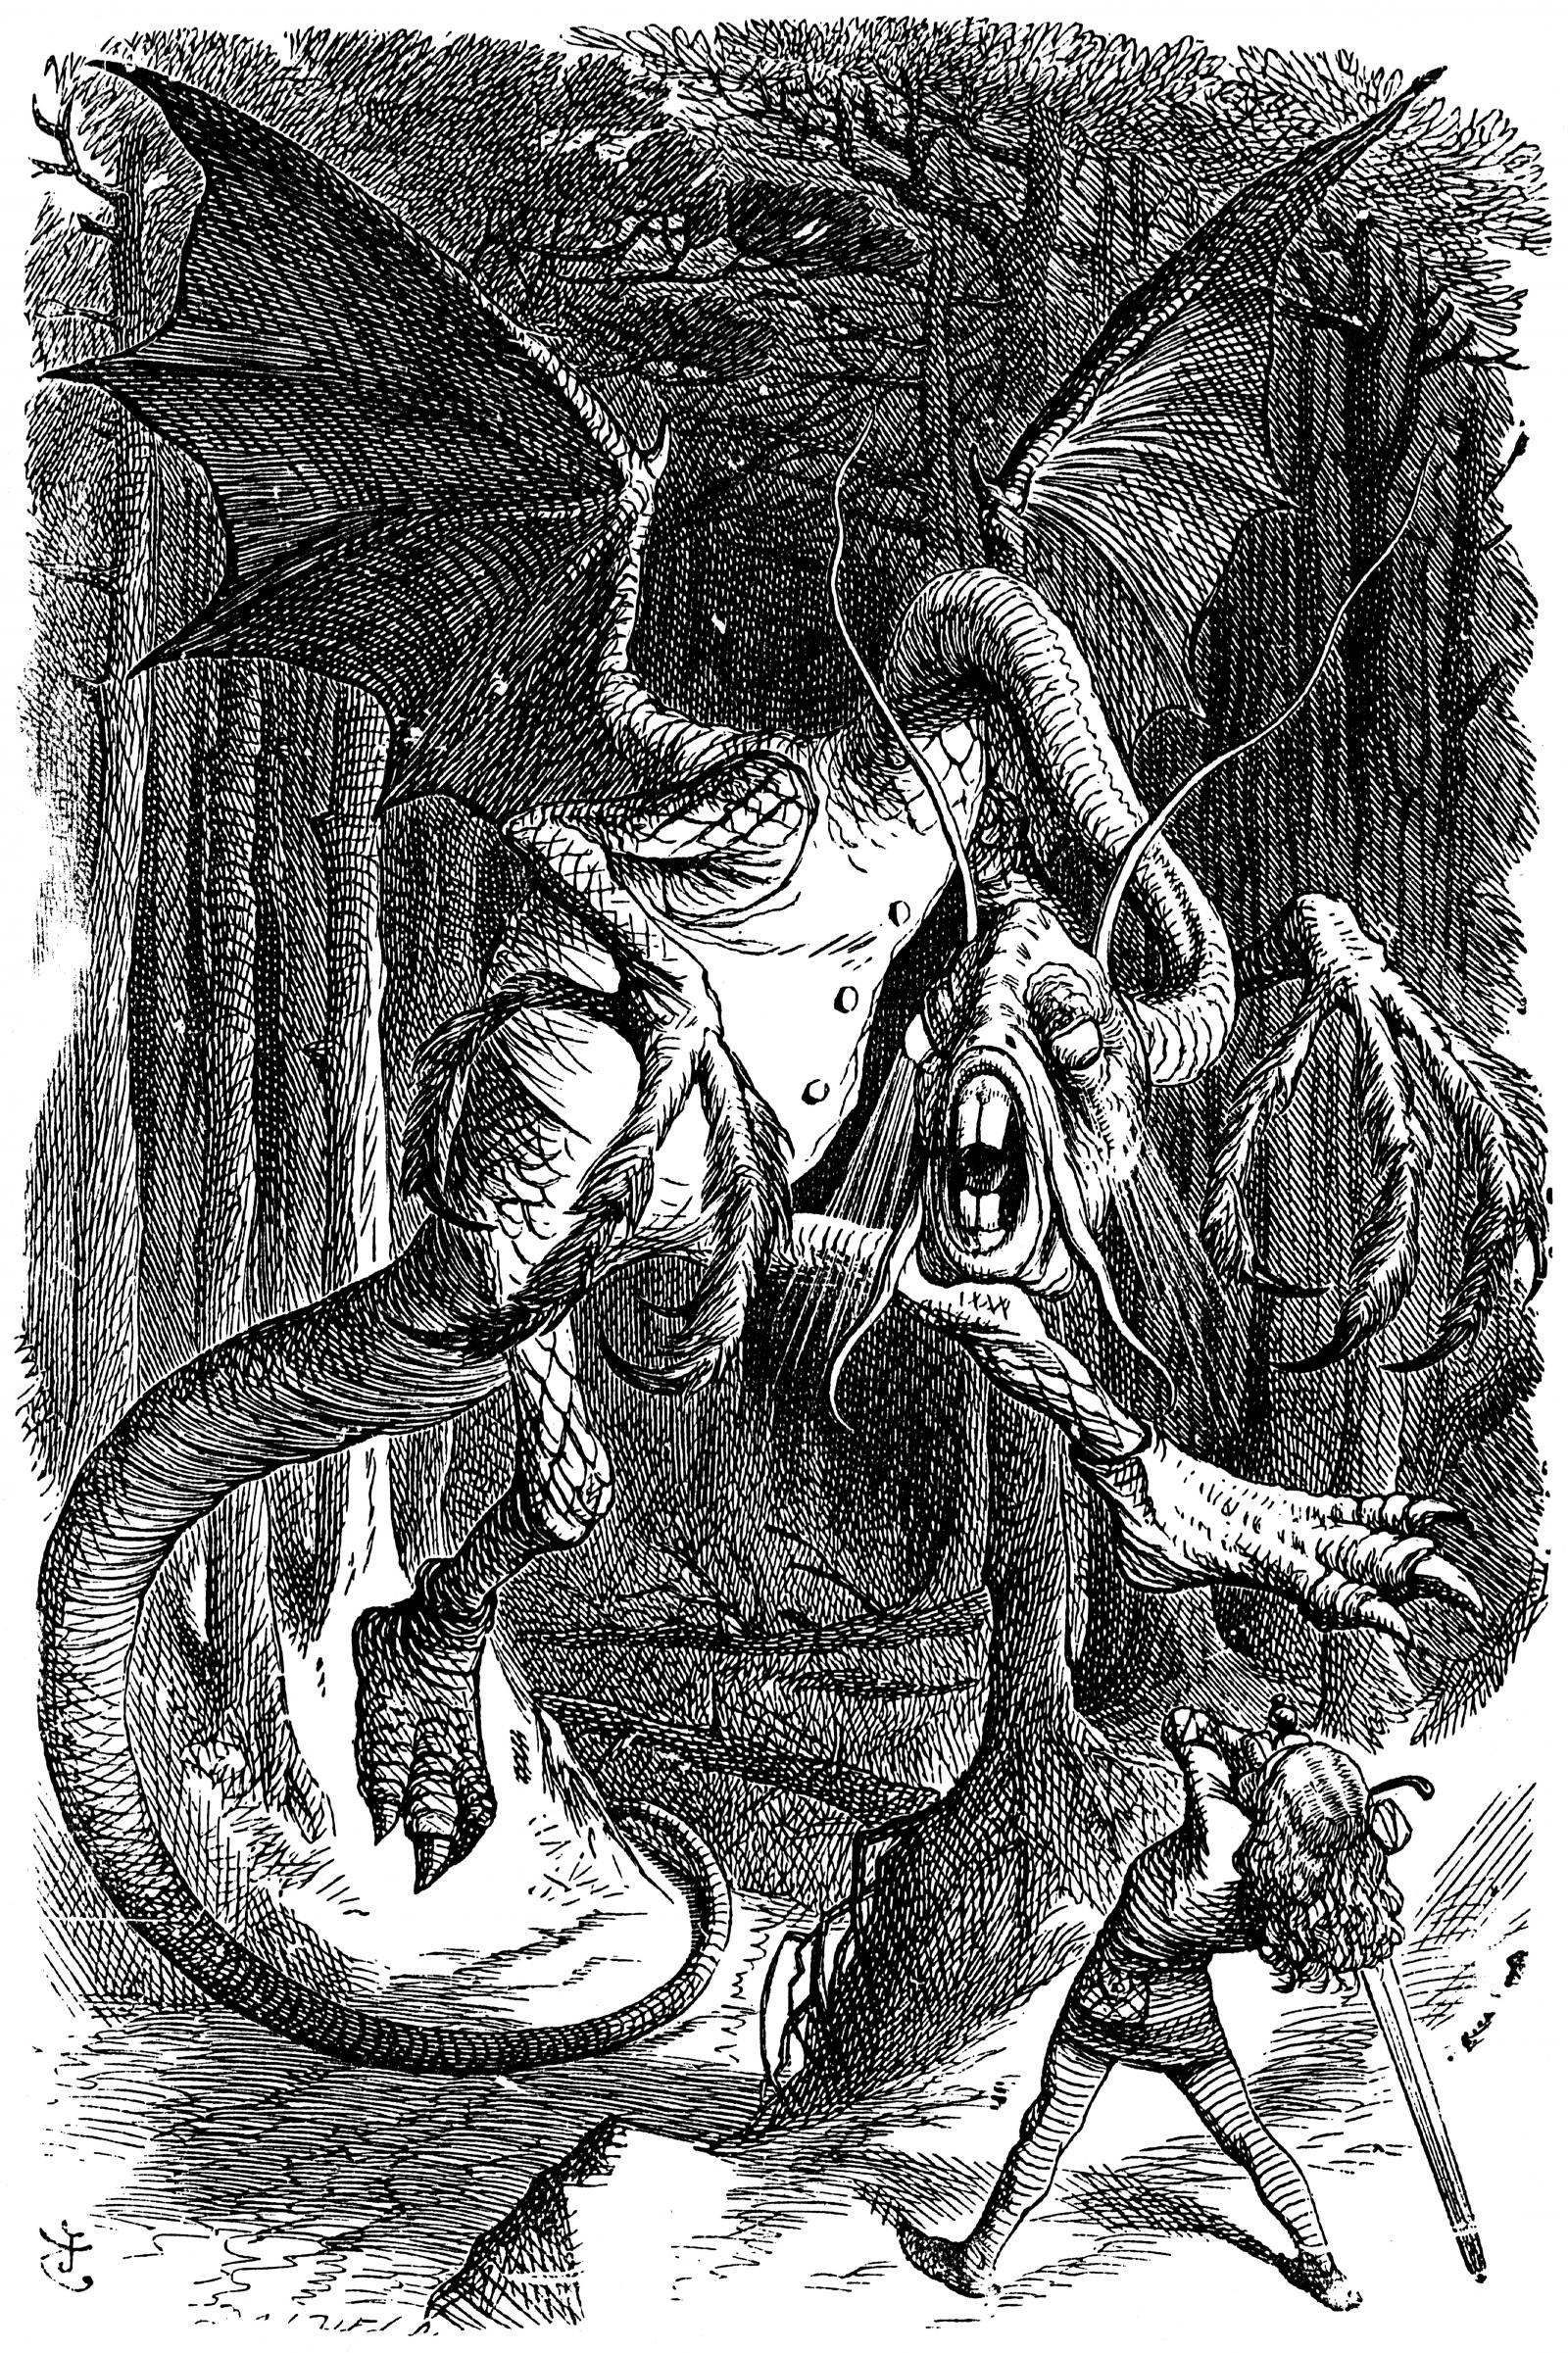 John Tenniel Illustration for 'The Jabberwocky' by Lewis Carroll